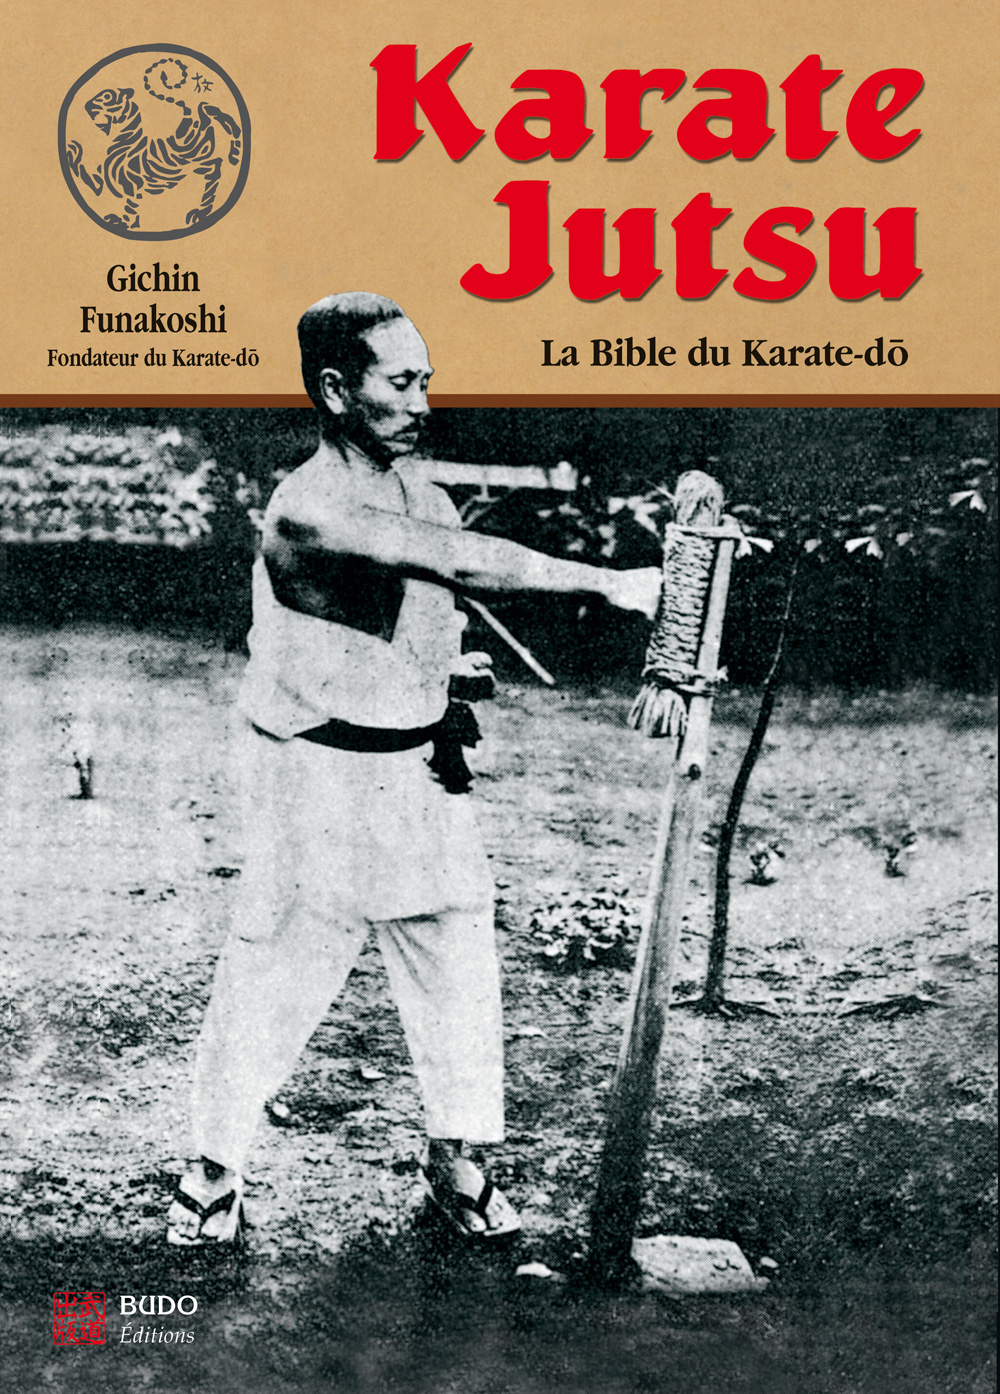 KARATE JUTSU  La bible du karate-dô